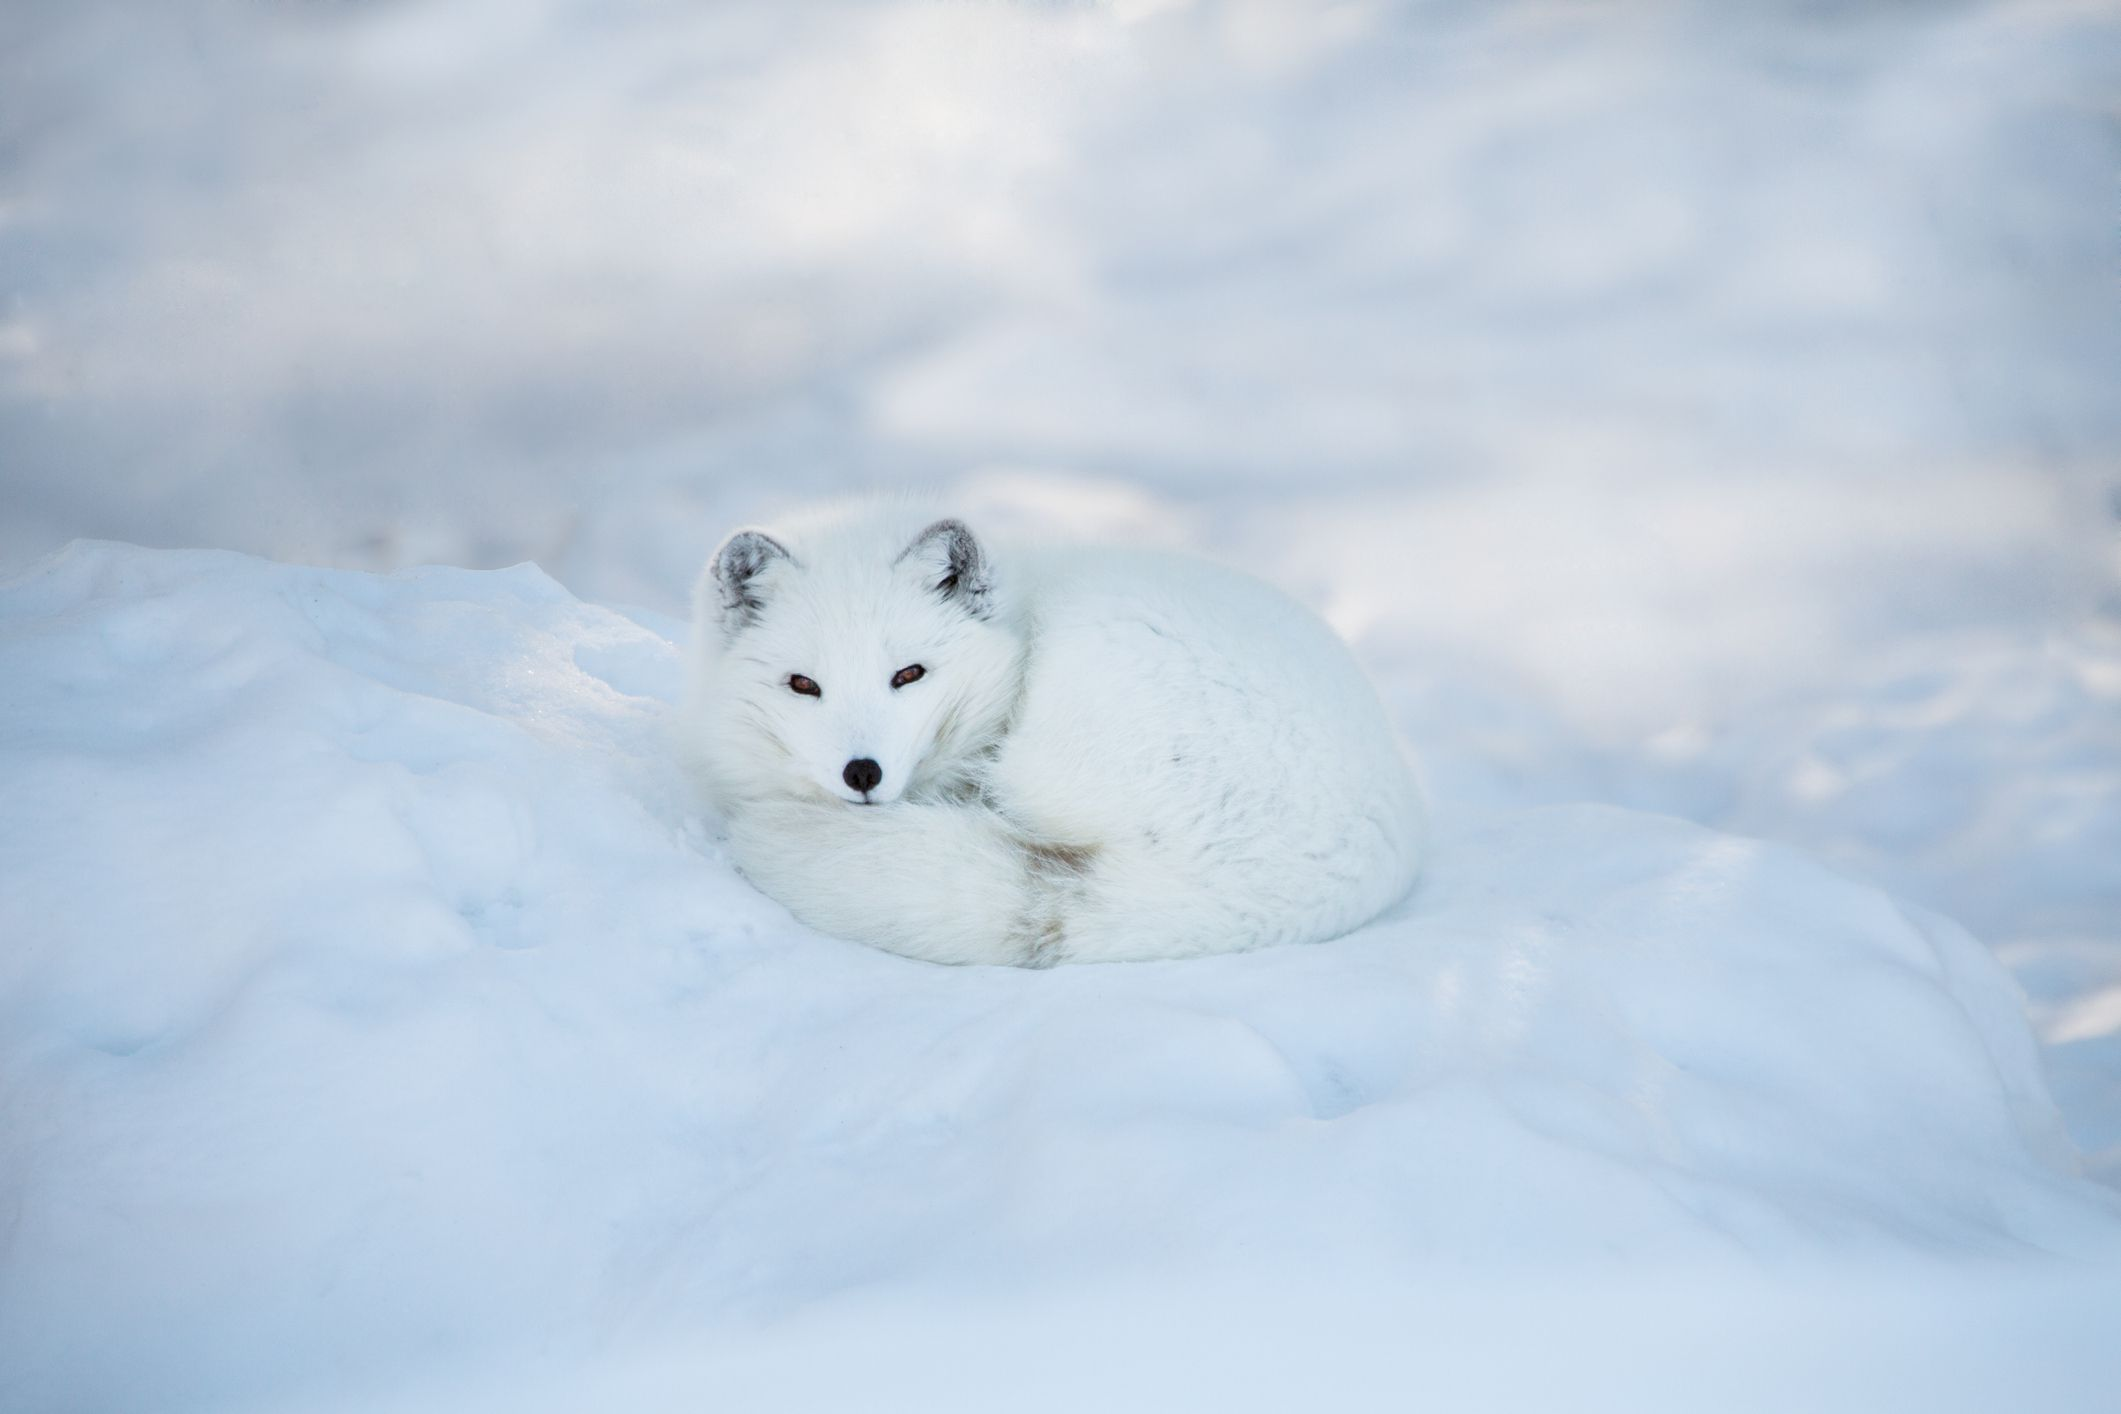 bright white arctic fox curls up on bed of white snow